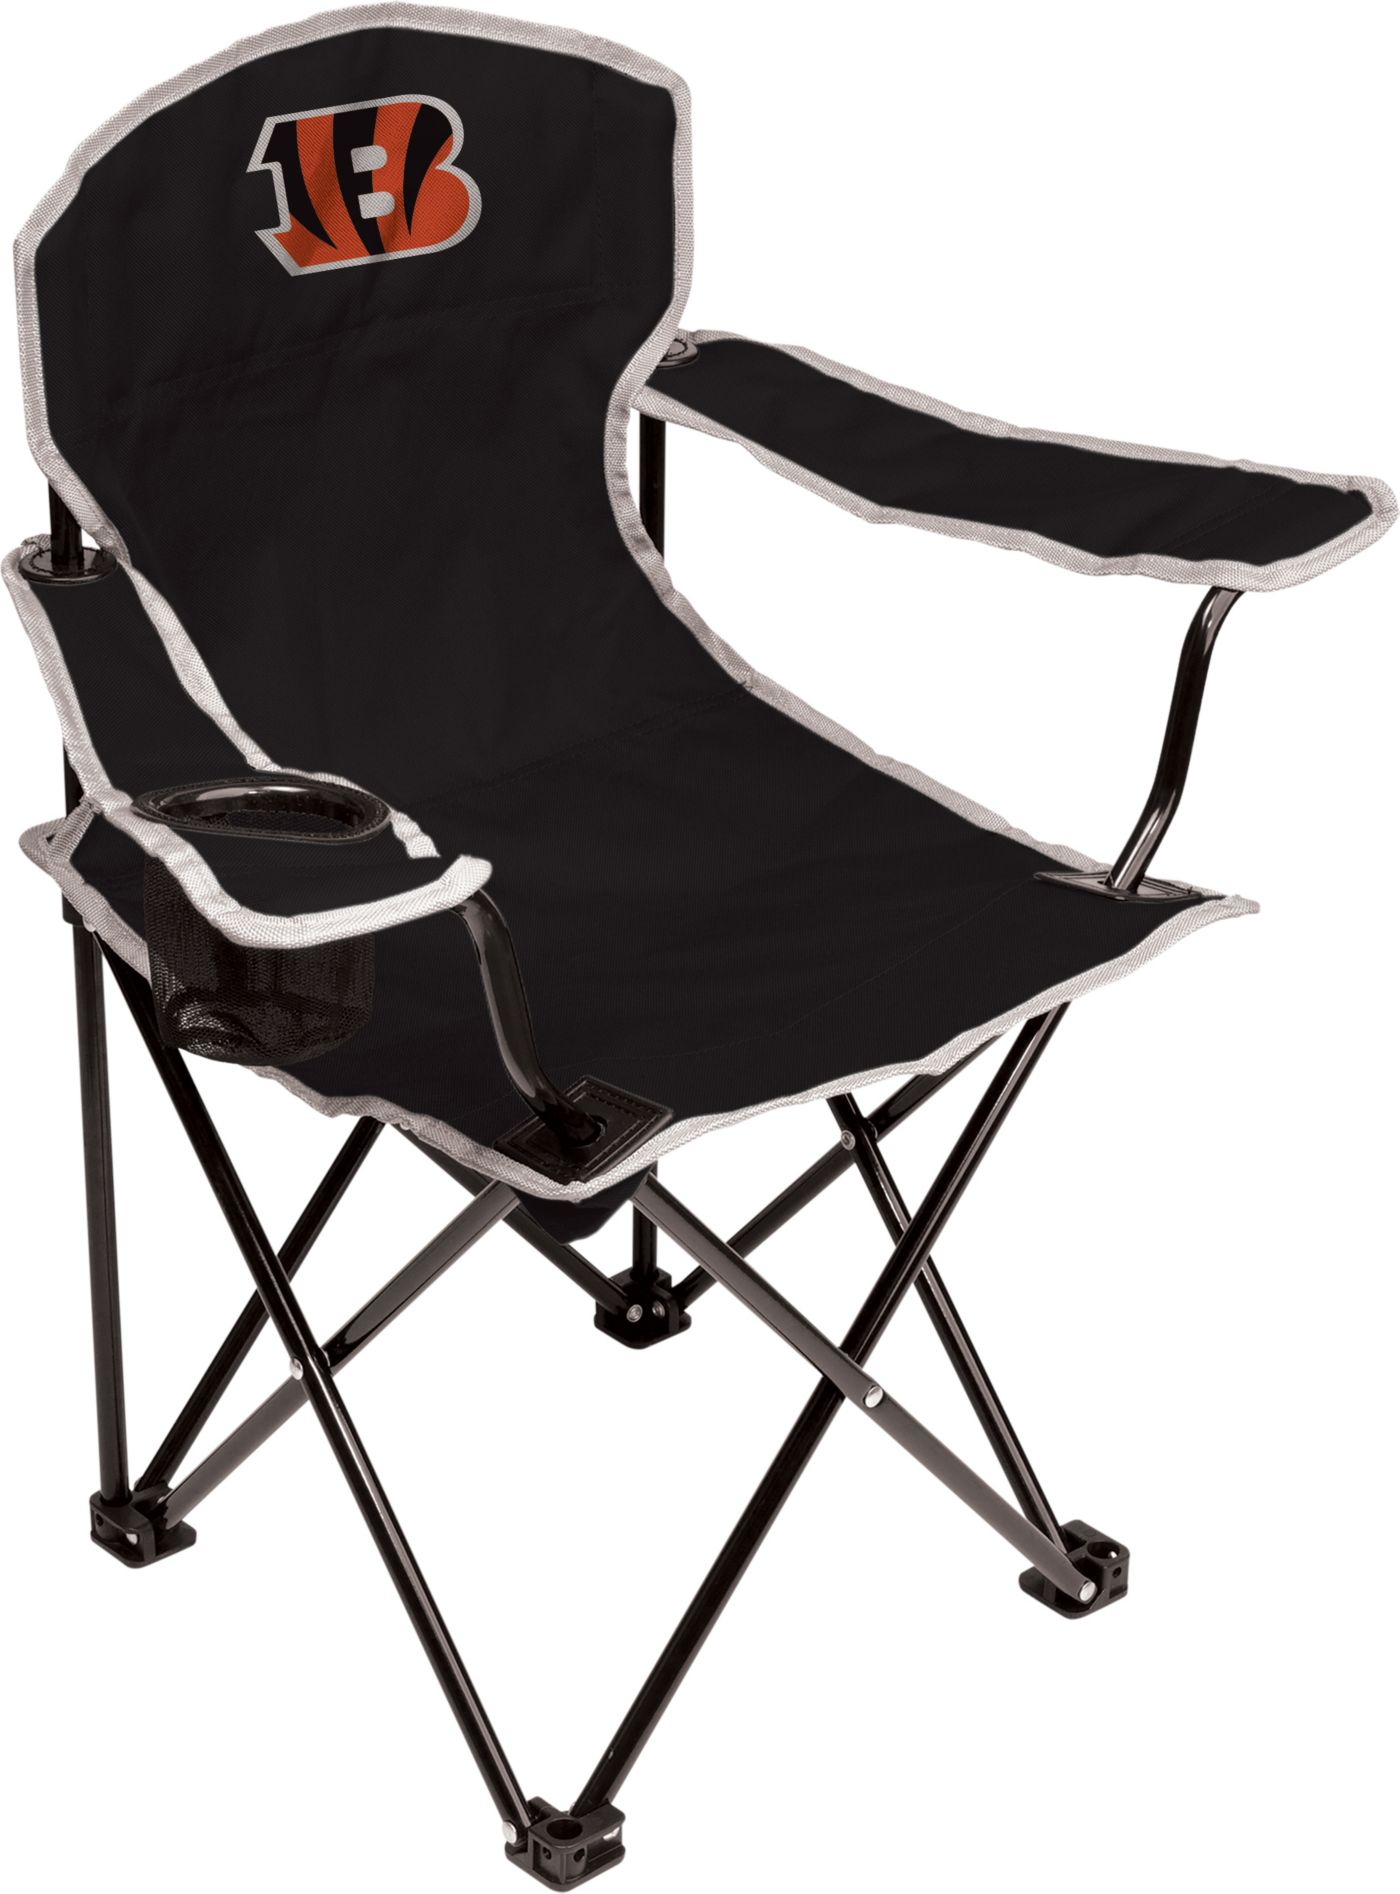 Rawlings Cincinnati Bengals Youth Chair